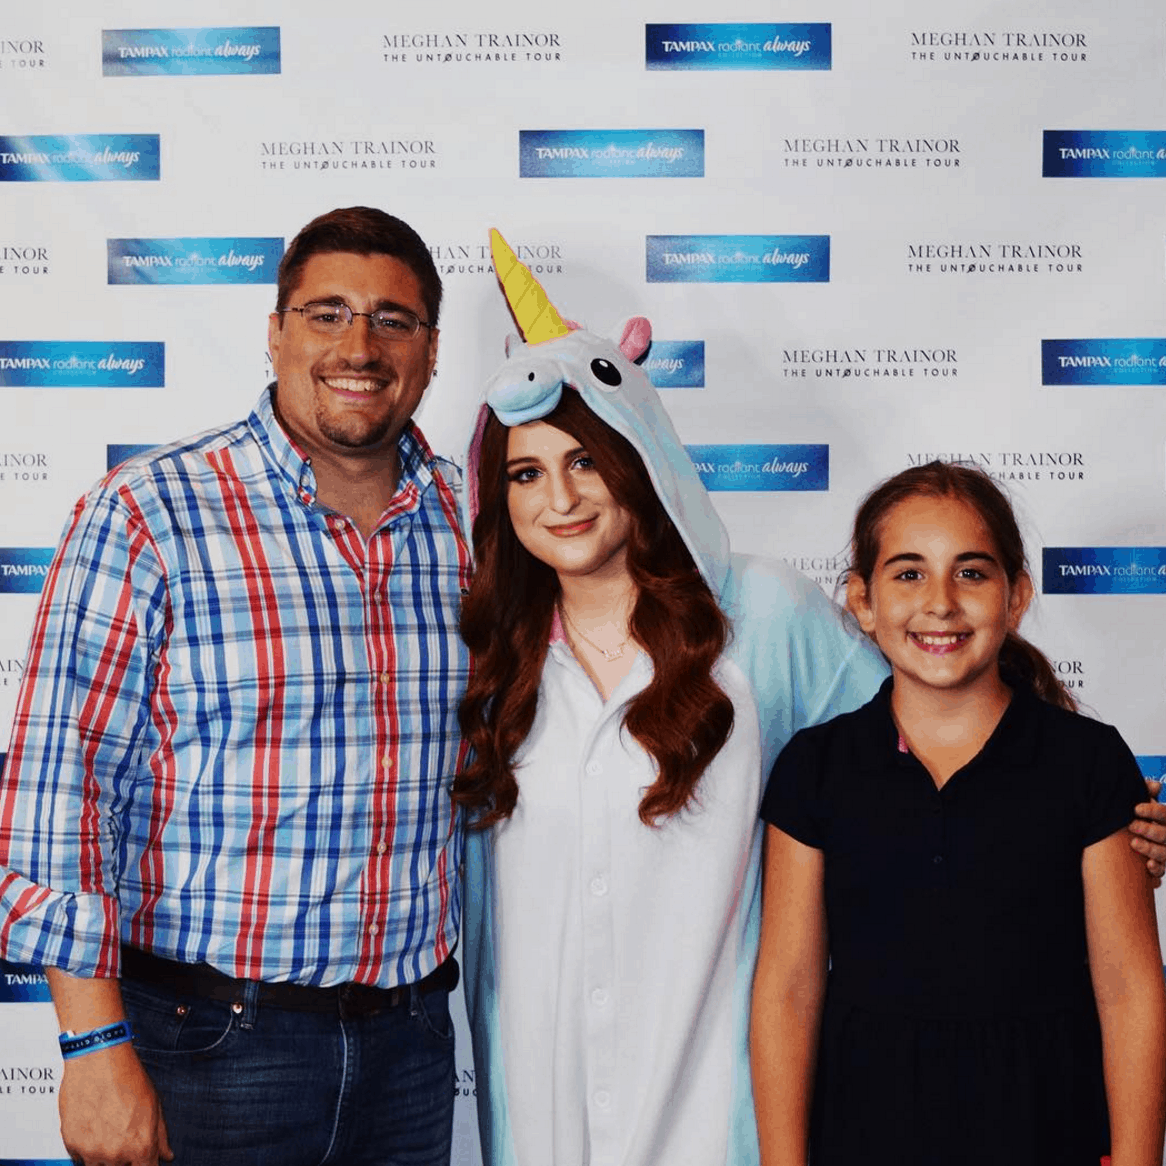 Meeting Meghan Trainor At Her #UntouchableTour #WearWhatYouWant